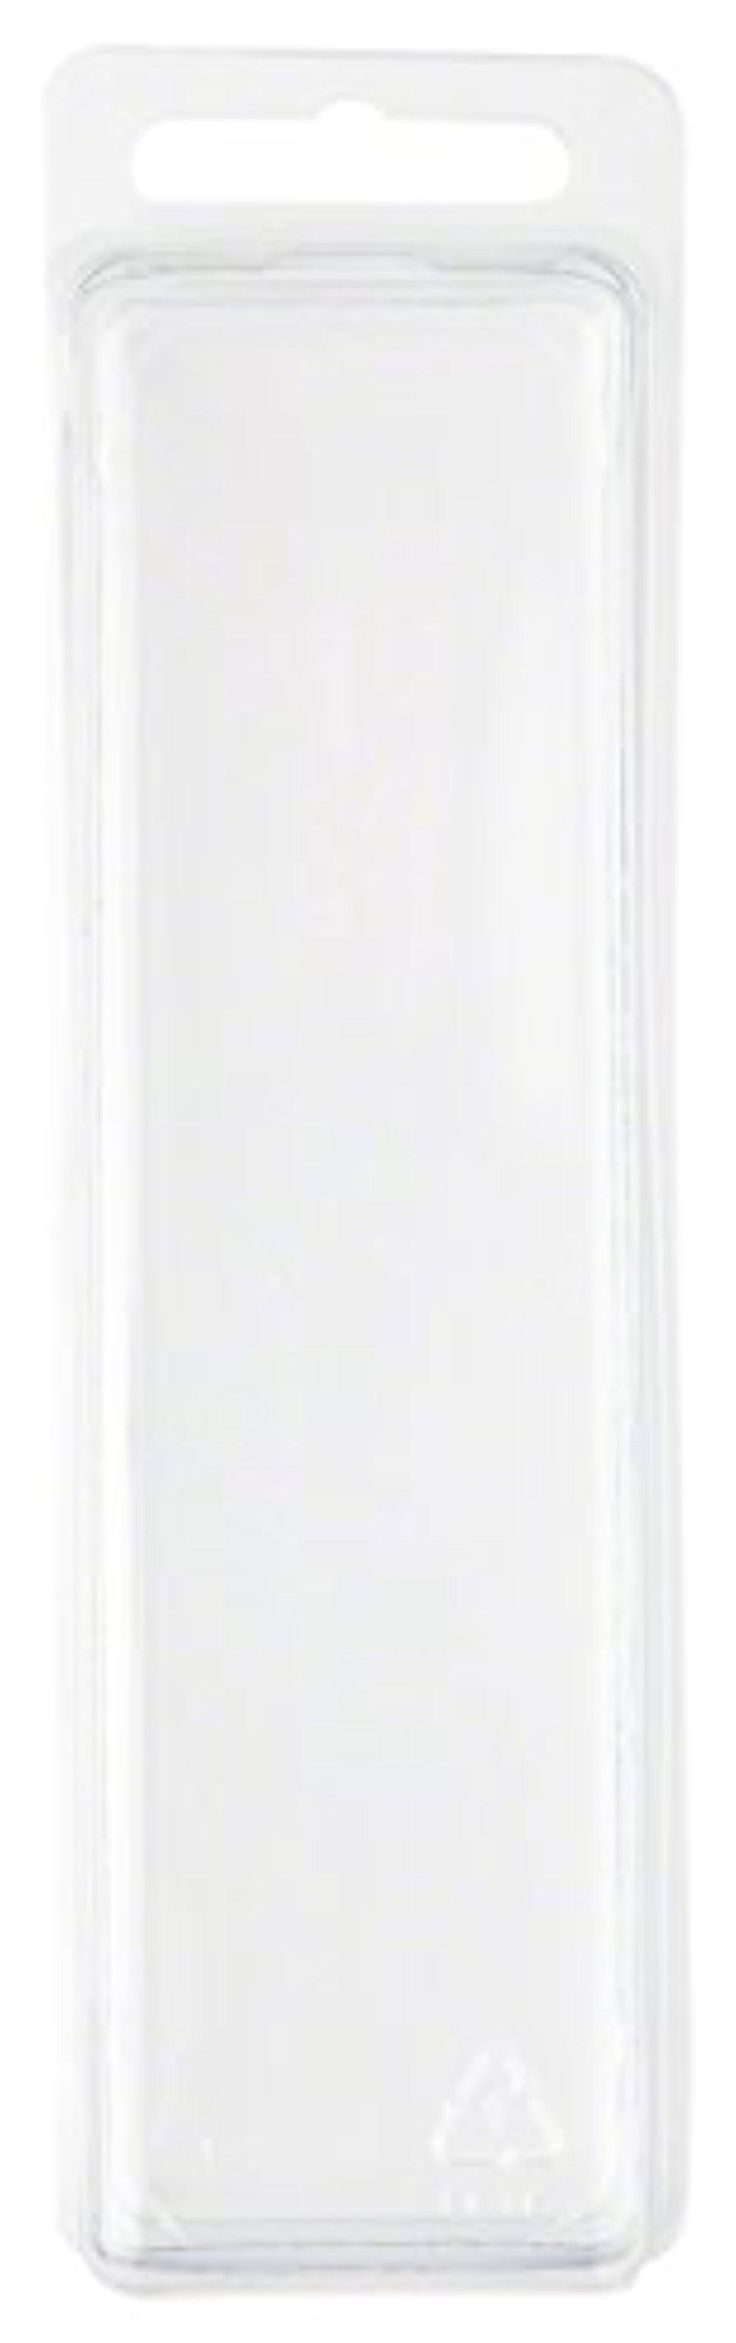 """Clear Plastic Clamshell Package / Storage Container, 5.5"""" H x 1.5"""" W x 1.25"""" D - Brought to you by Avarsha.com"""